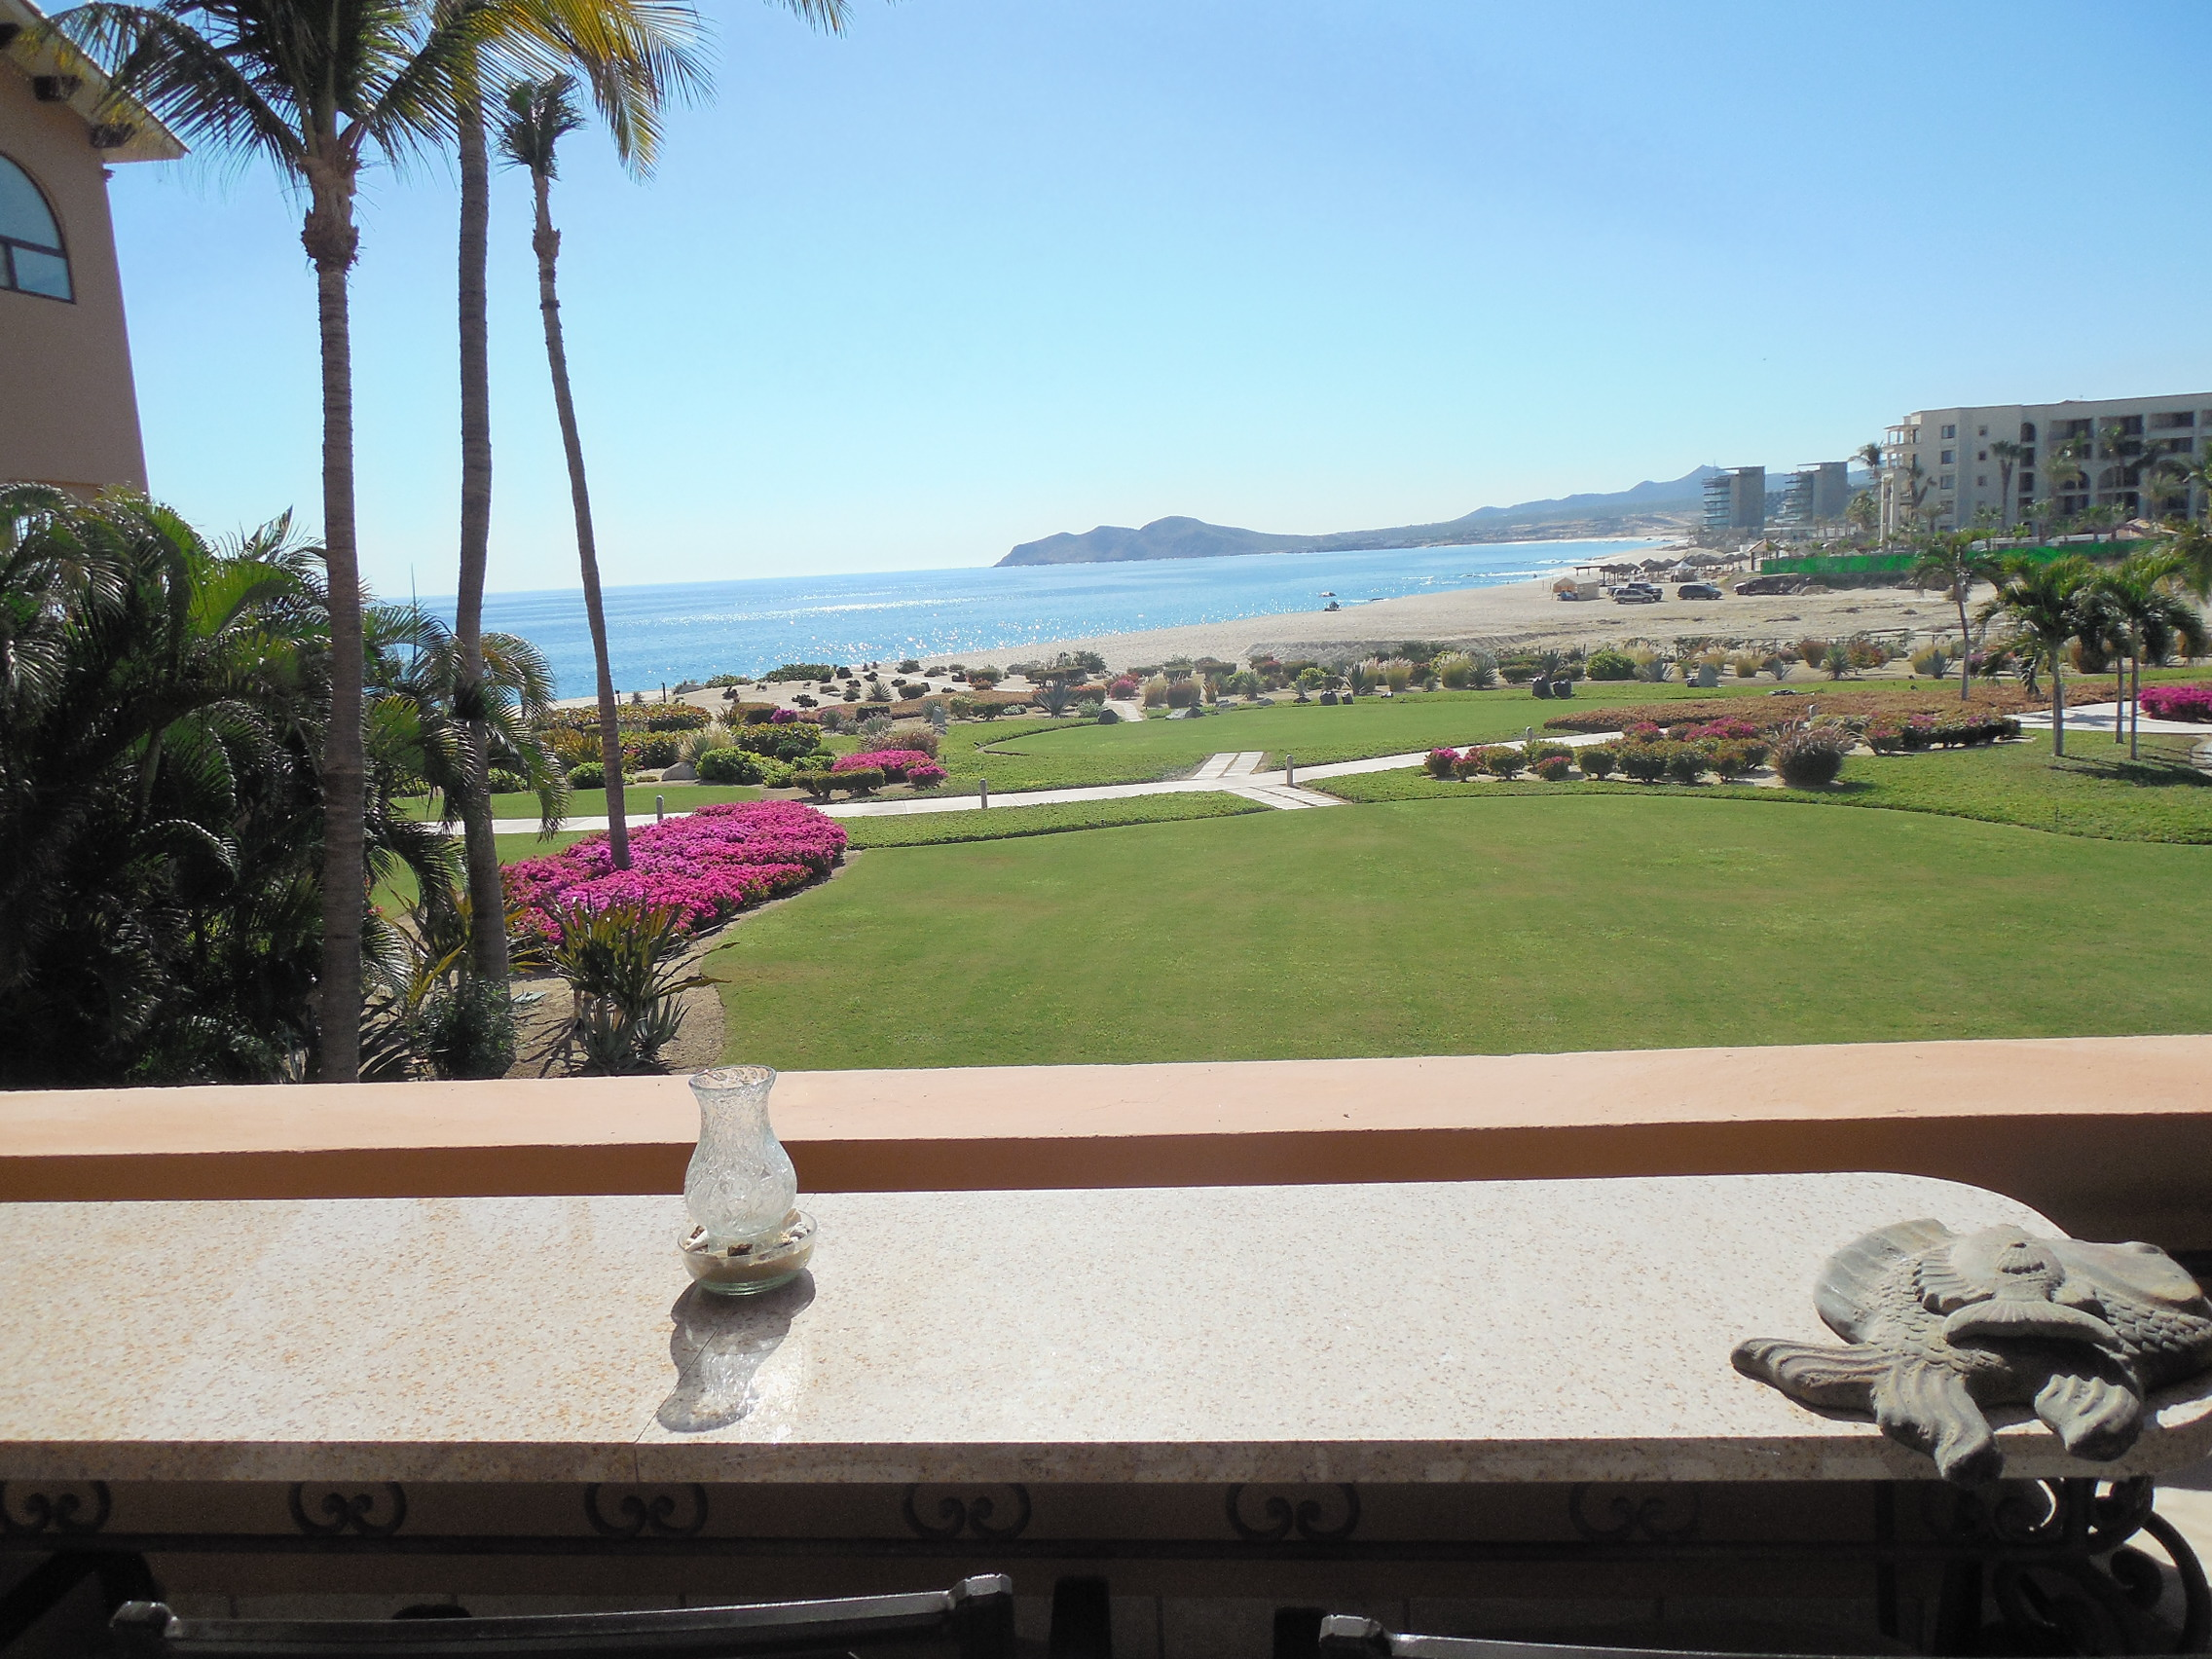 Duna 201 ph II, 2 BDRM 2 BA INCREDIBLE VIEWS REMODELED